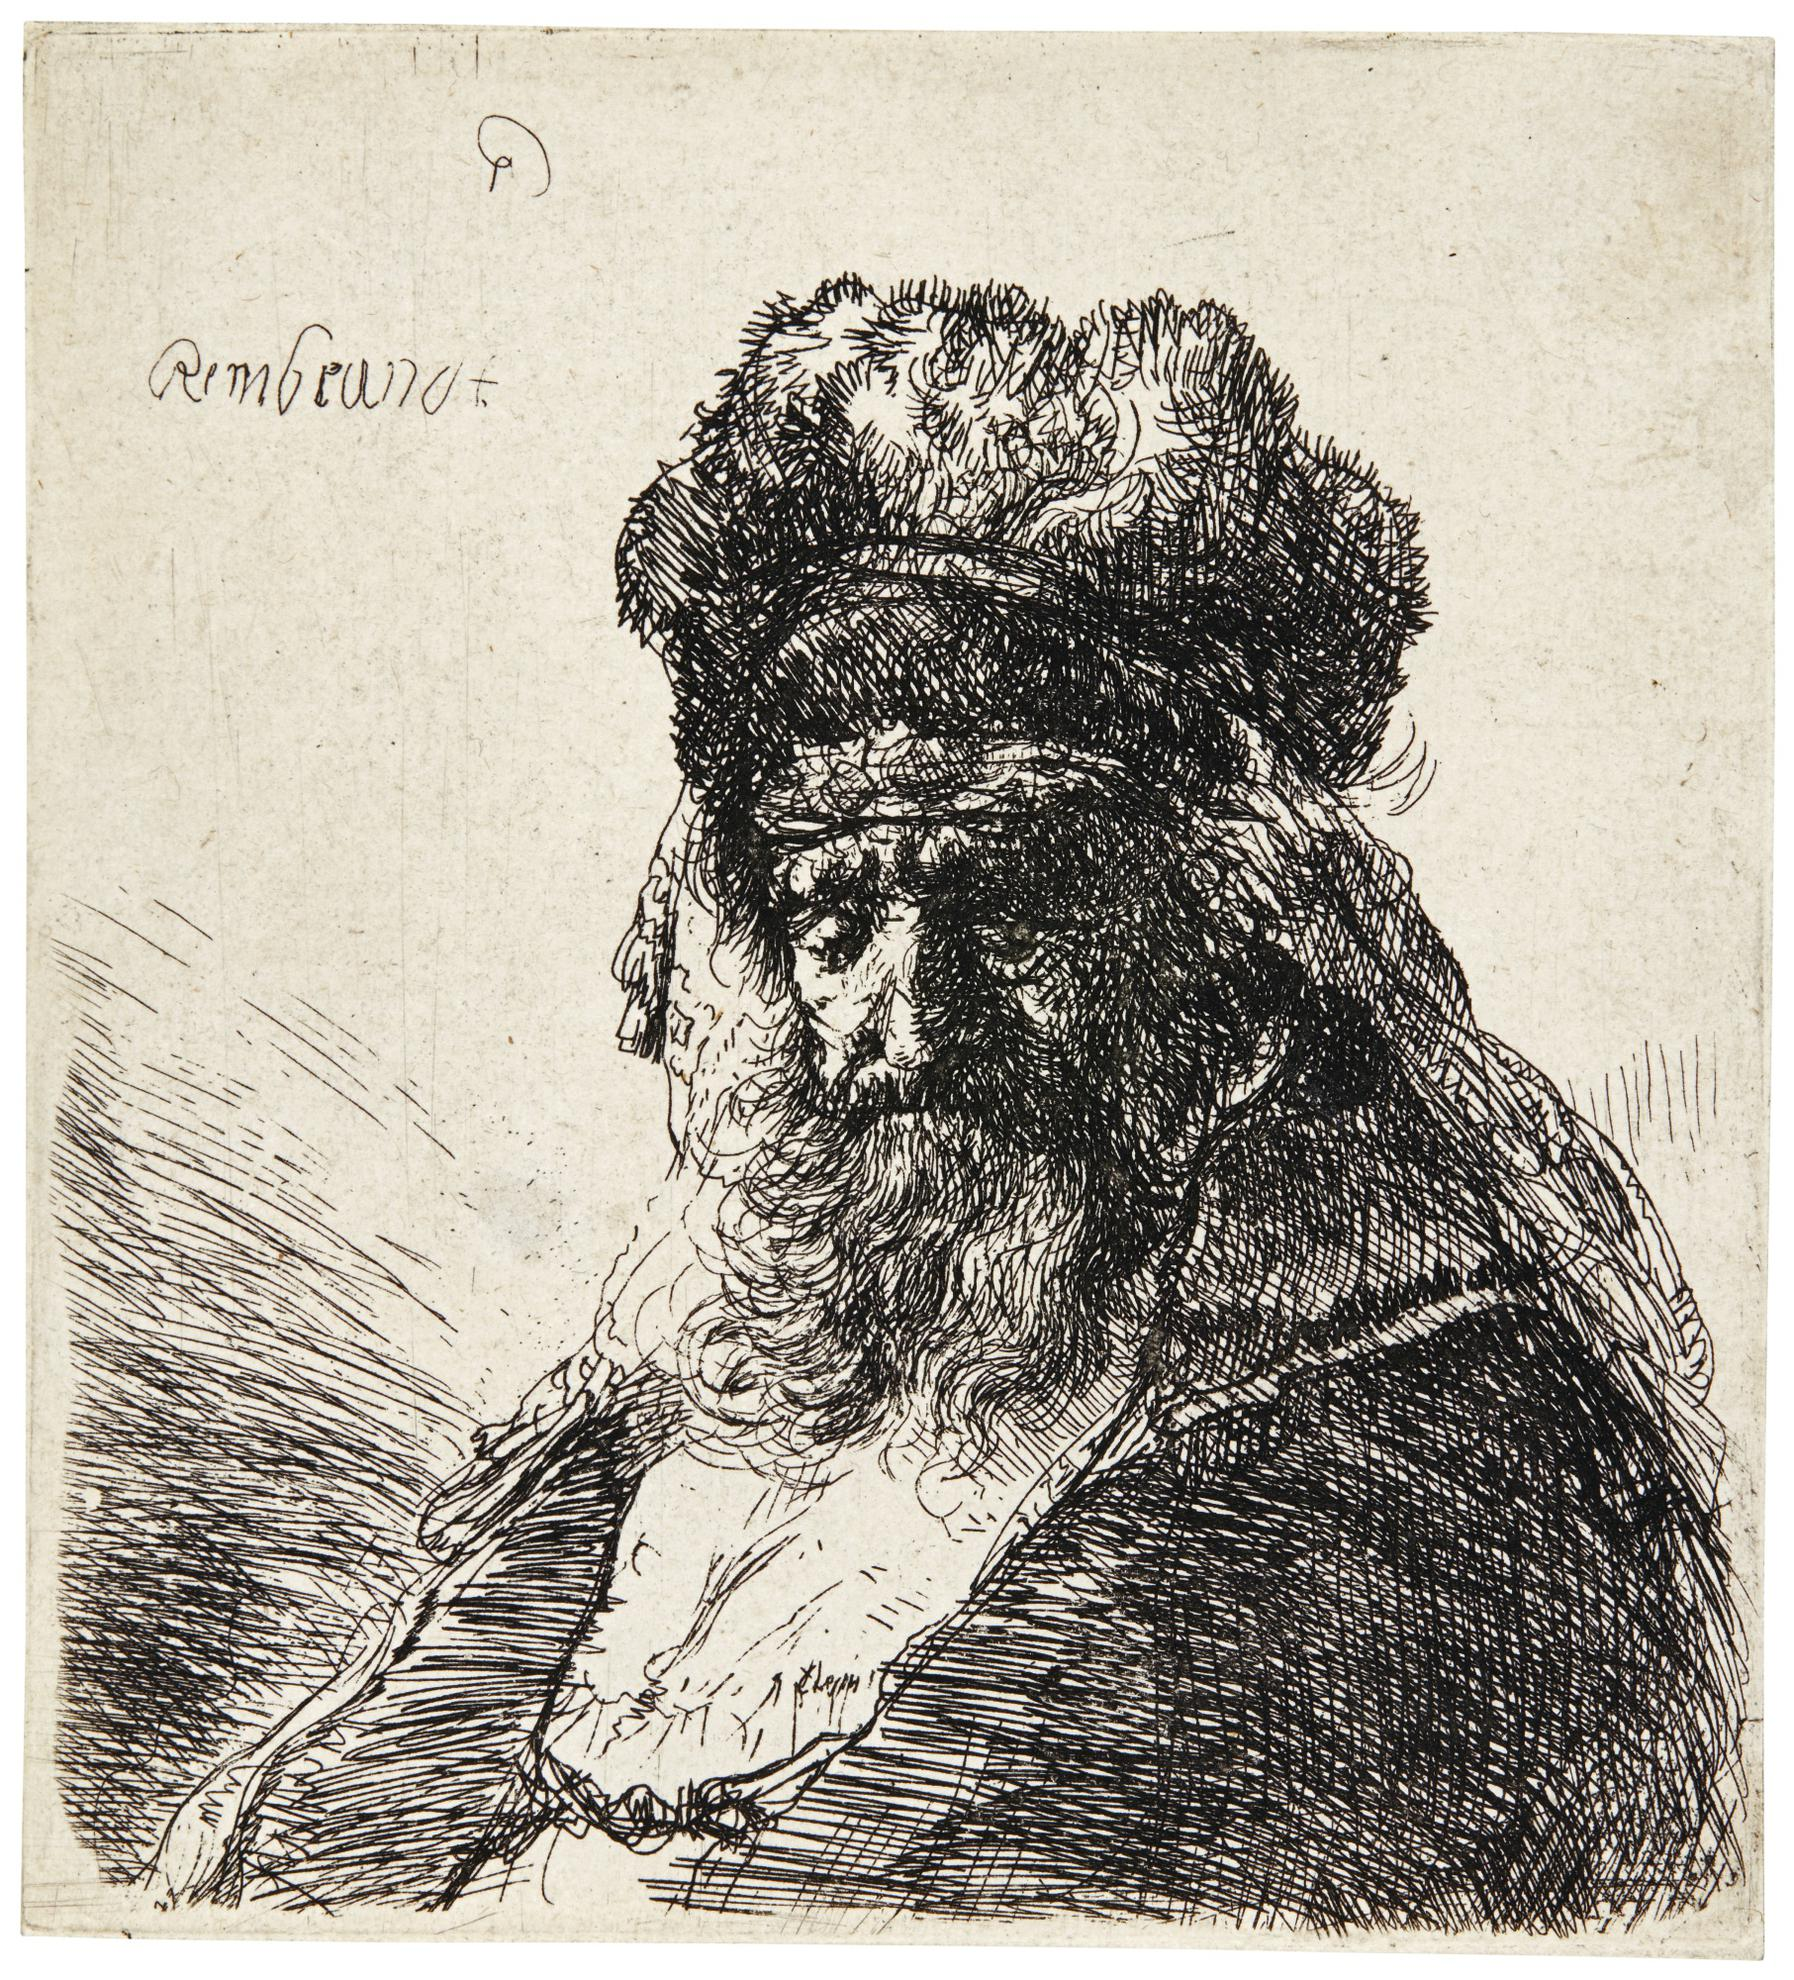 Rembrandt van Rijn-Bearded Old Man In A High Fur Cap, With Eyes Closed (B., Holl. 290; New Holl. 148; H. 130)-1635